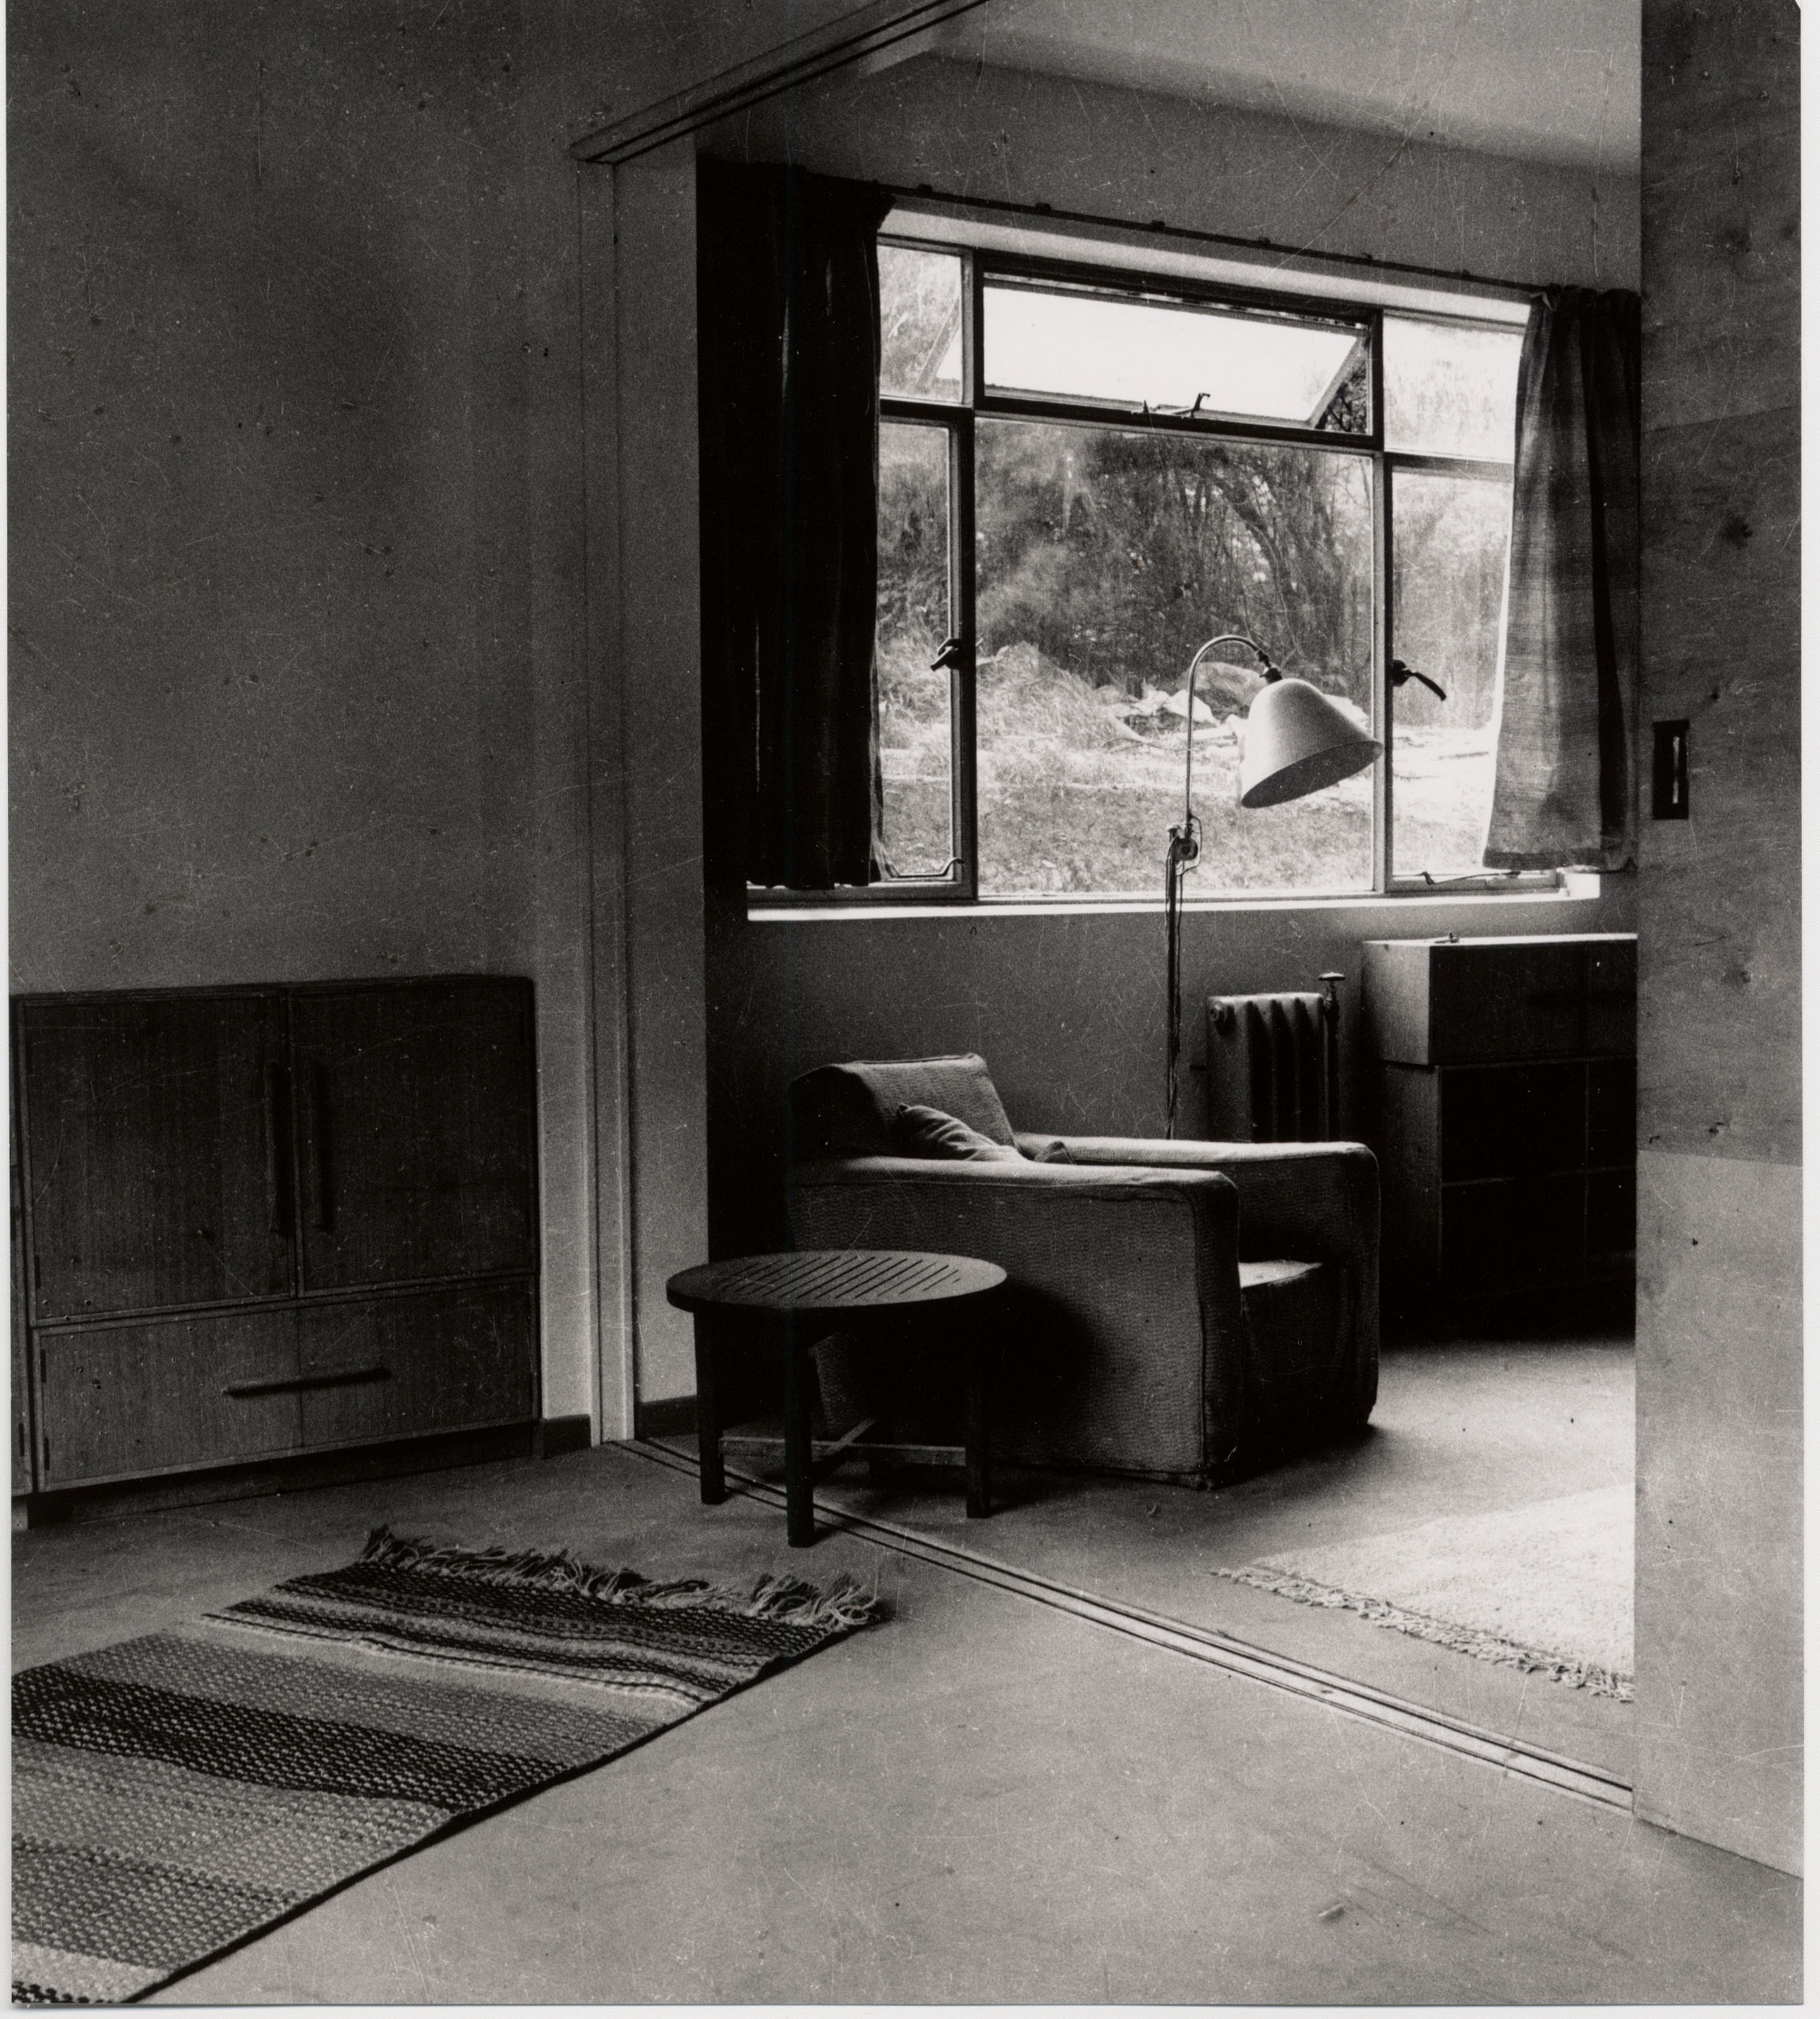 Living room space inside an Isokon Flat, featuring bespoke furniture designed with space limitations in mind